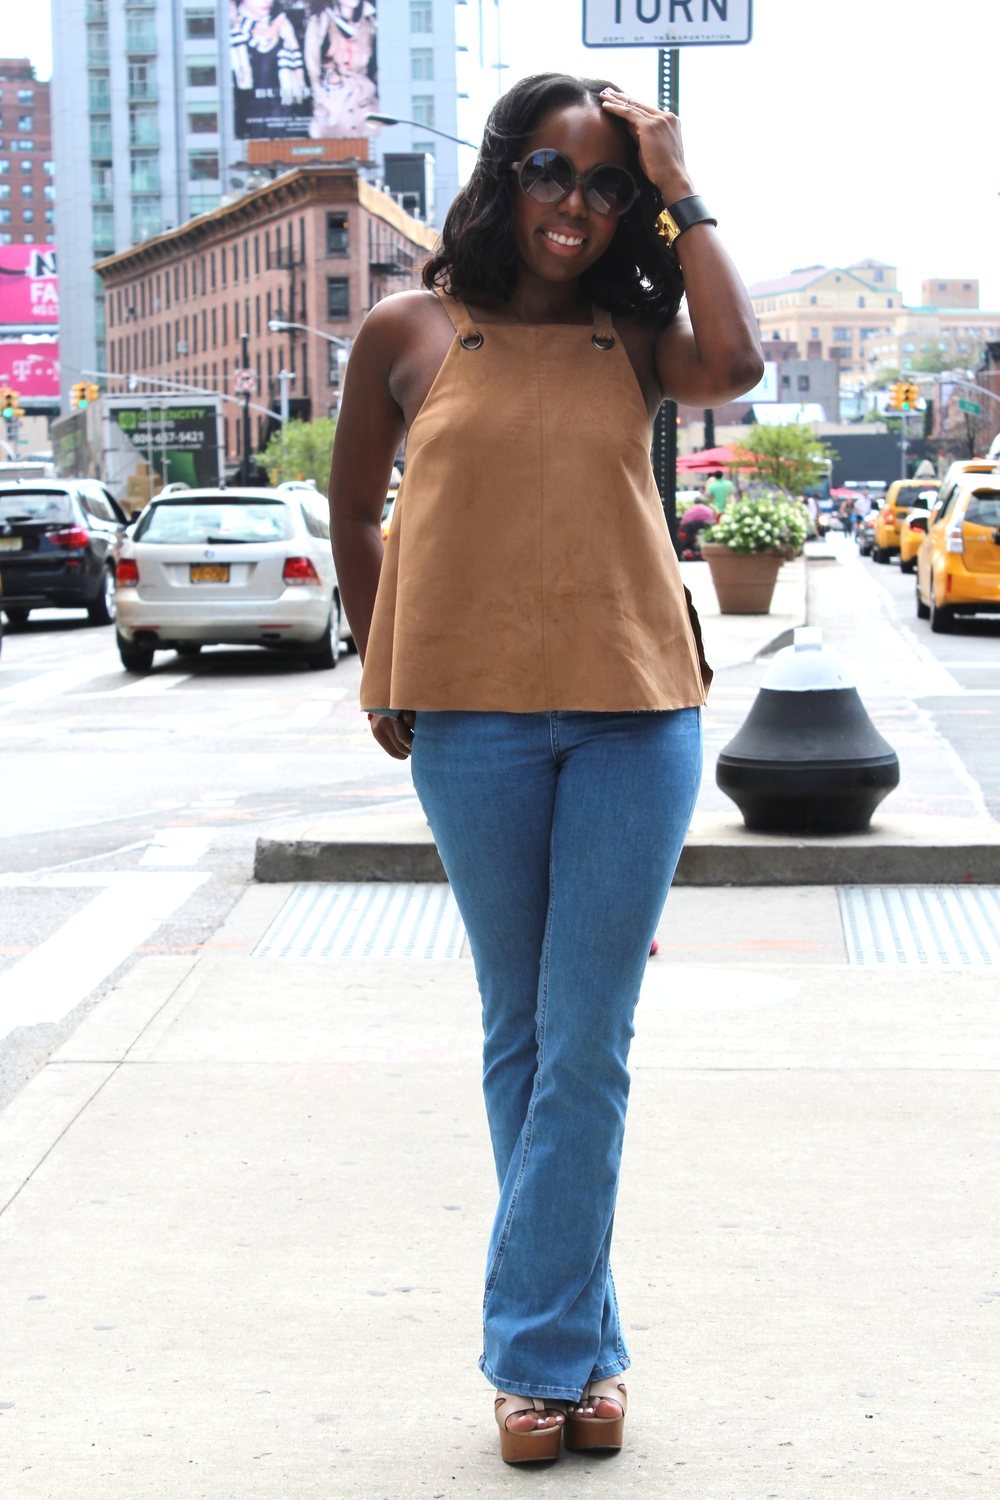 Here's to another season of NYFW! On one of my last days covering shows, I wore a 70s inspired suede tank and denim flares all from Topshop.